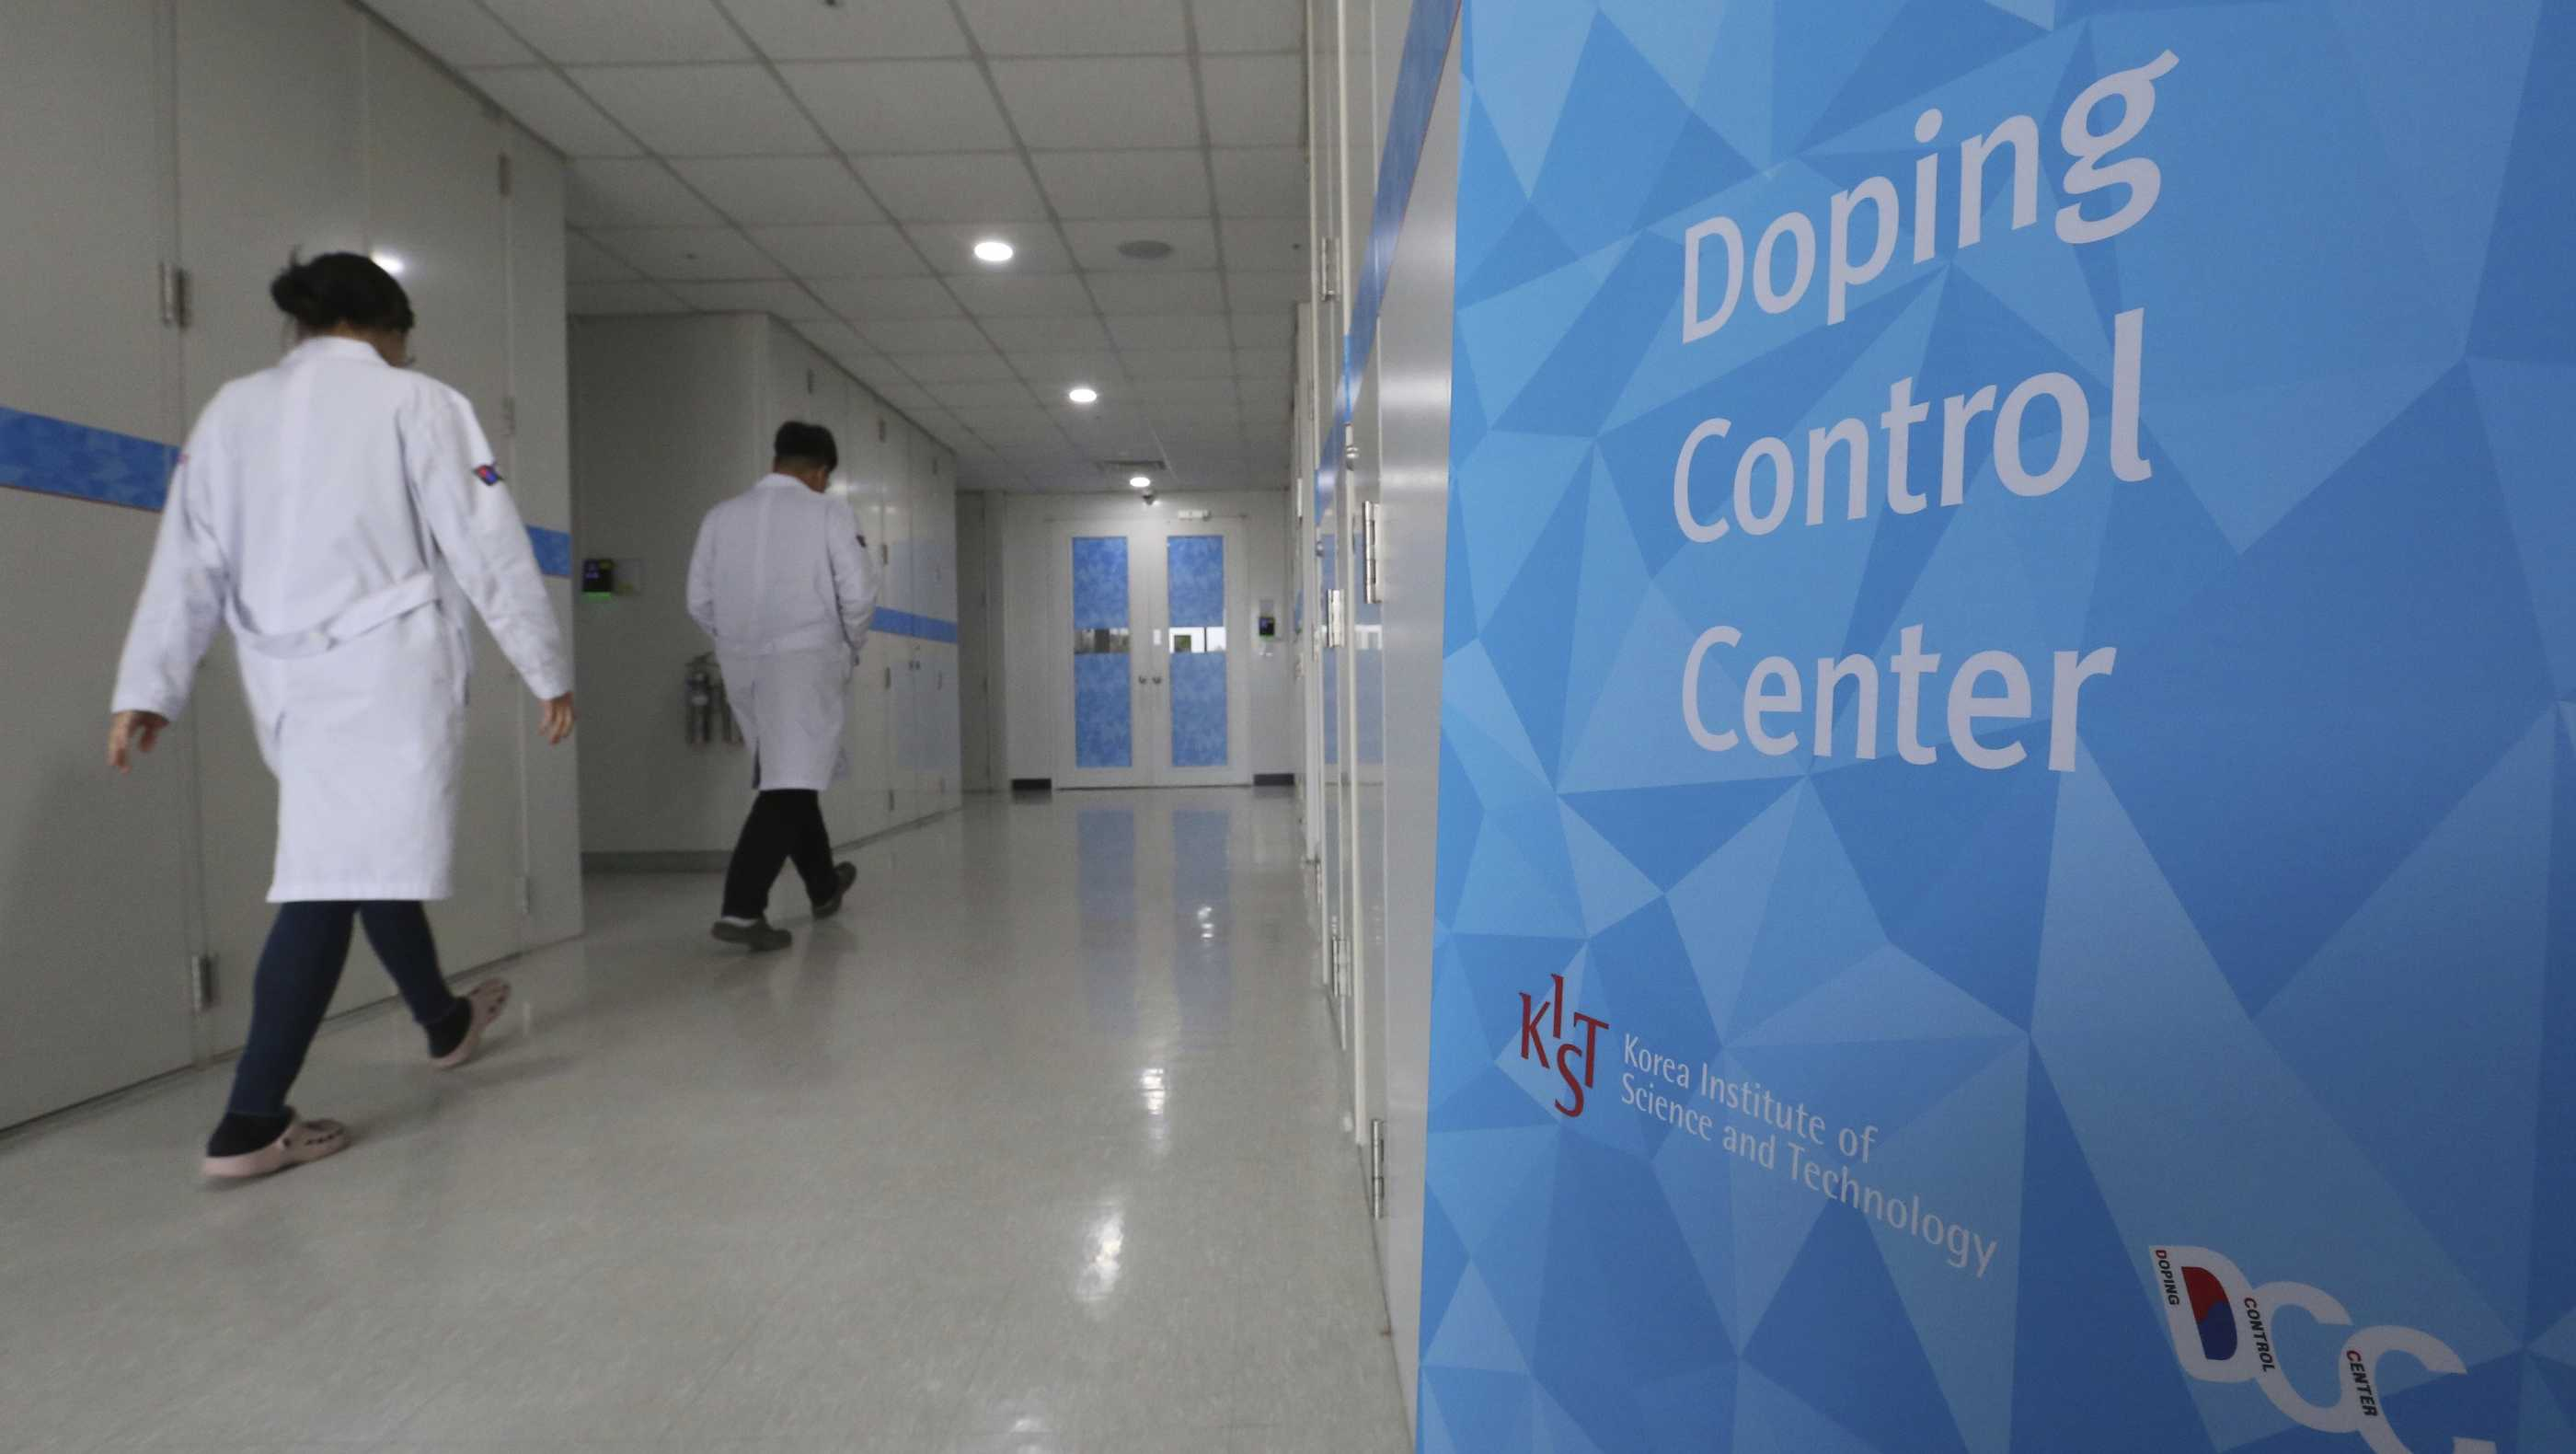 Researches enter into the Doping Control Center at the Korea Institute of Science and Technology in Seoul, South Korea, Monday, Feb. 19, 2018.